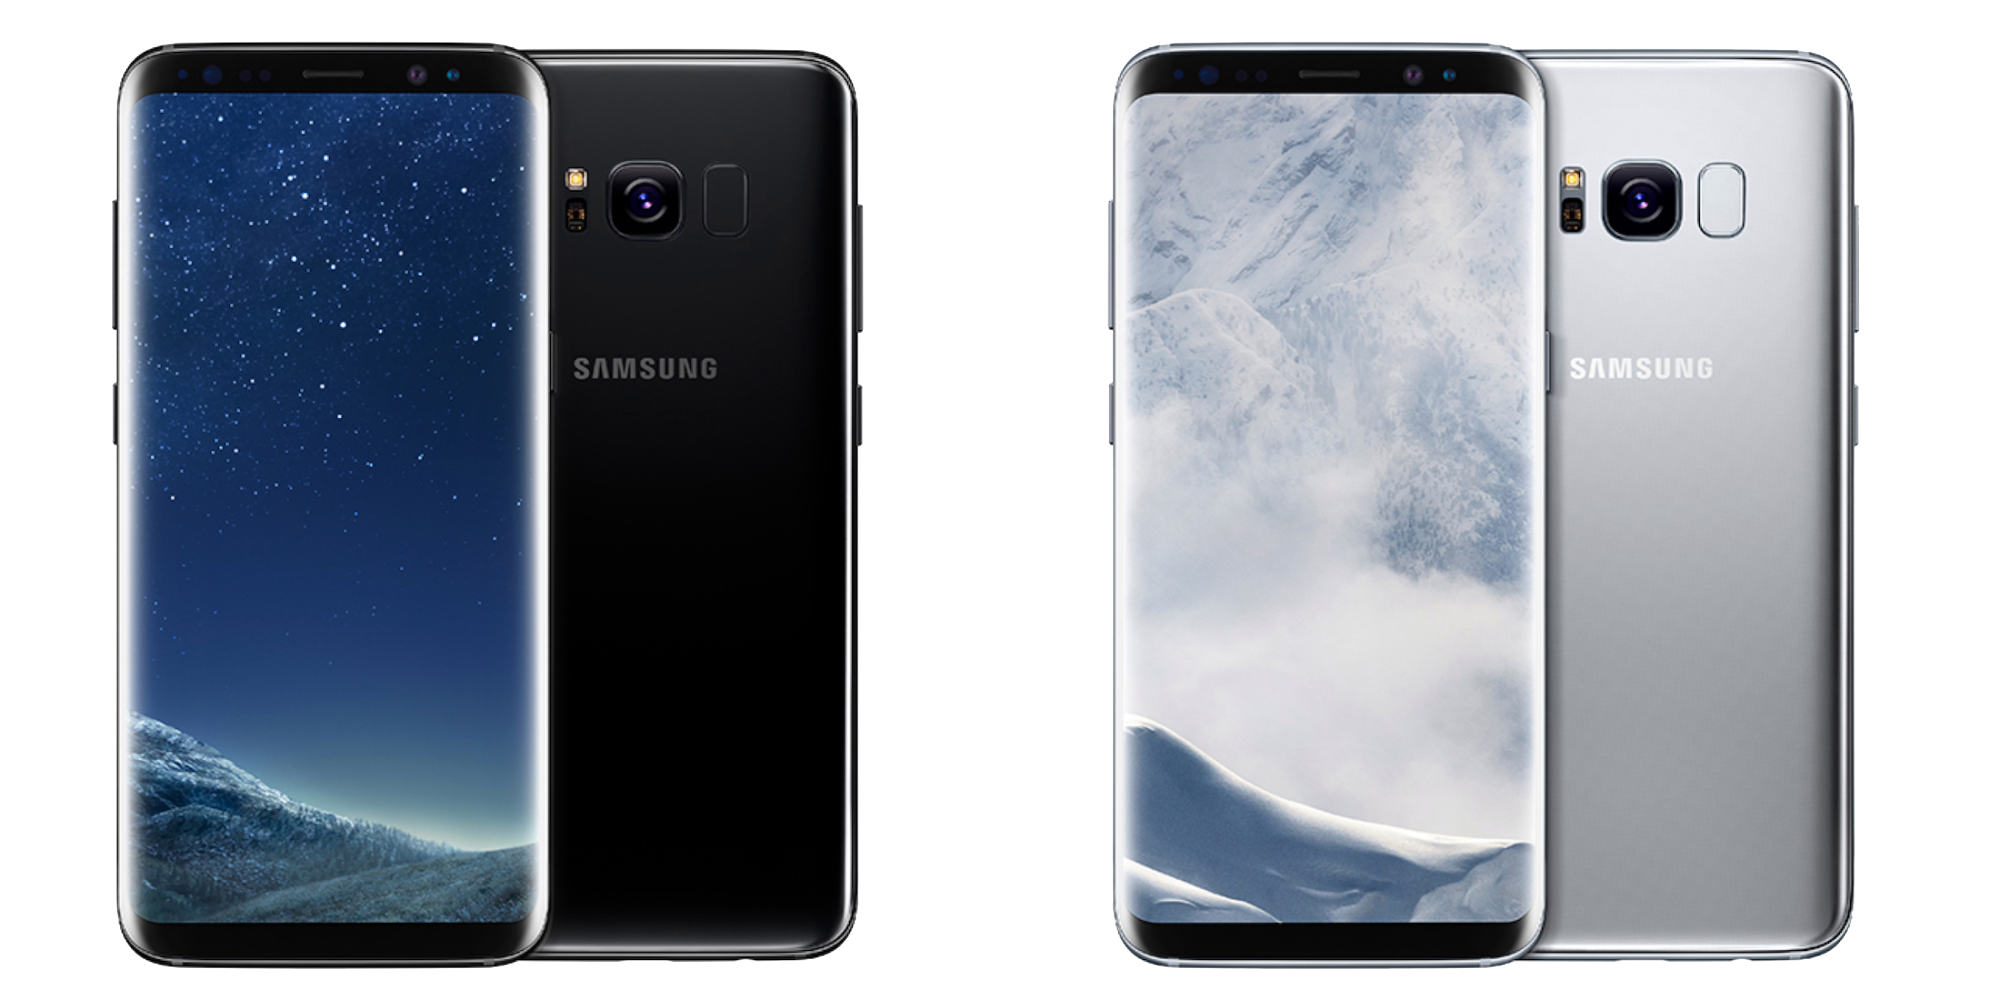 Galaxy S8 Png - Galaxy S8 Plus Mobile Png Transparent Background